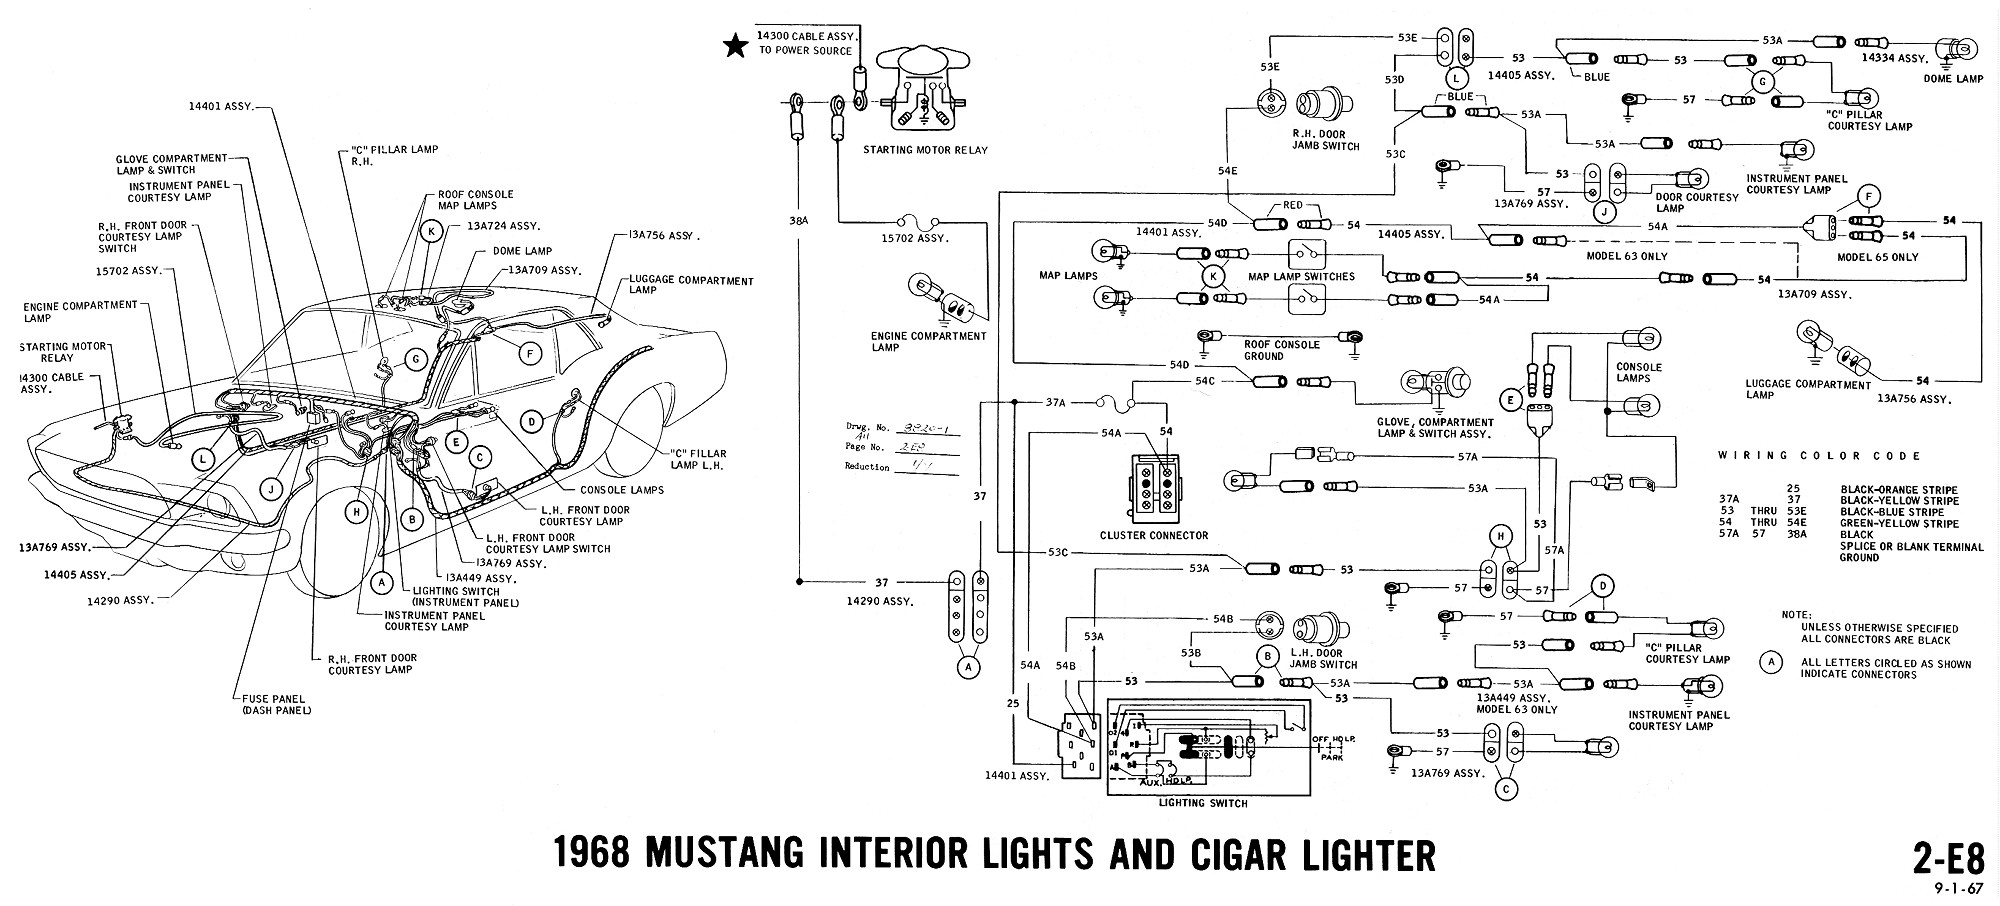 1968 mustang wiring diagram interior lights cigar lighter 1968 mustang wiring diagrams and vacuum schematics average joe 1966 mustang wiring diagrams at webbmarketing.co